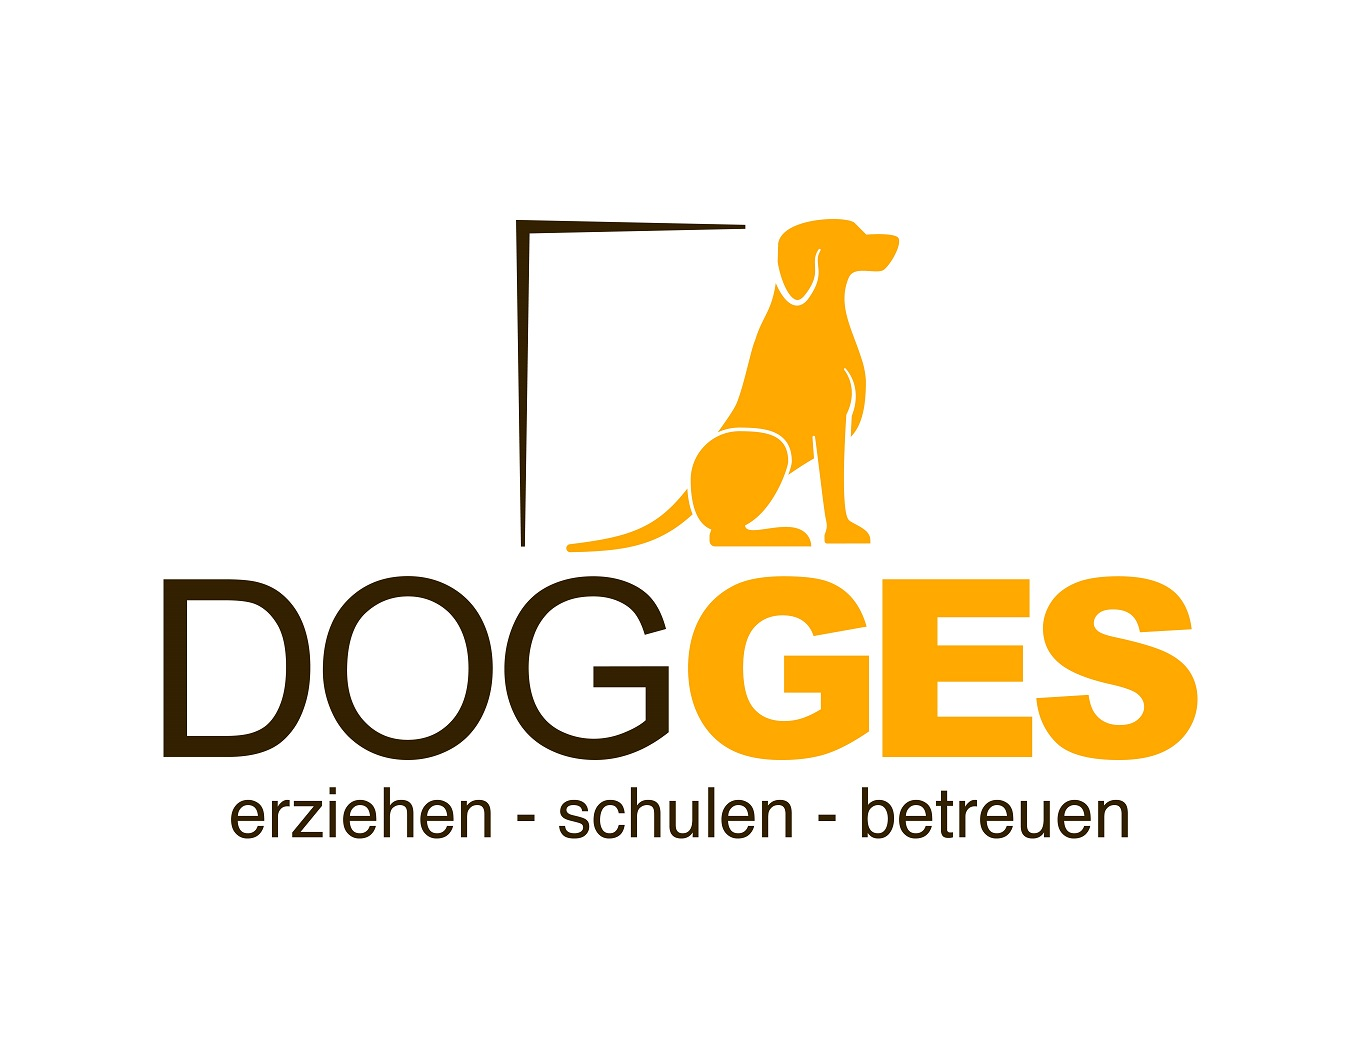 Dogges